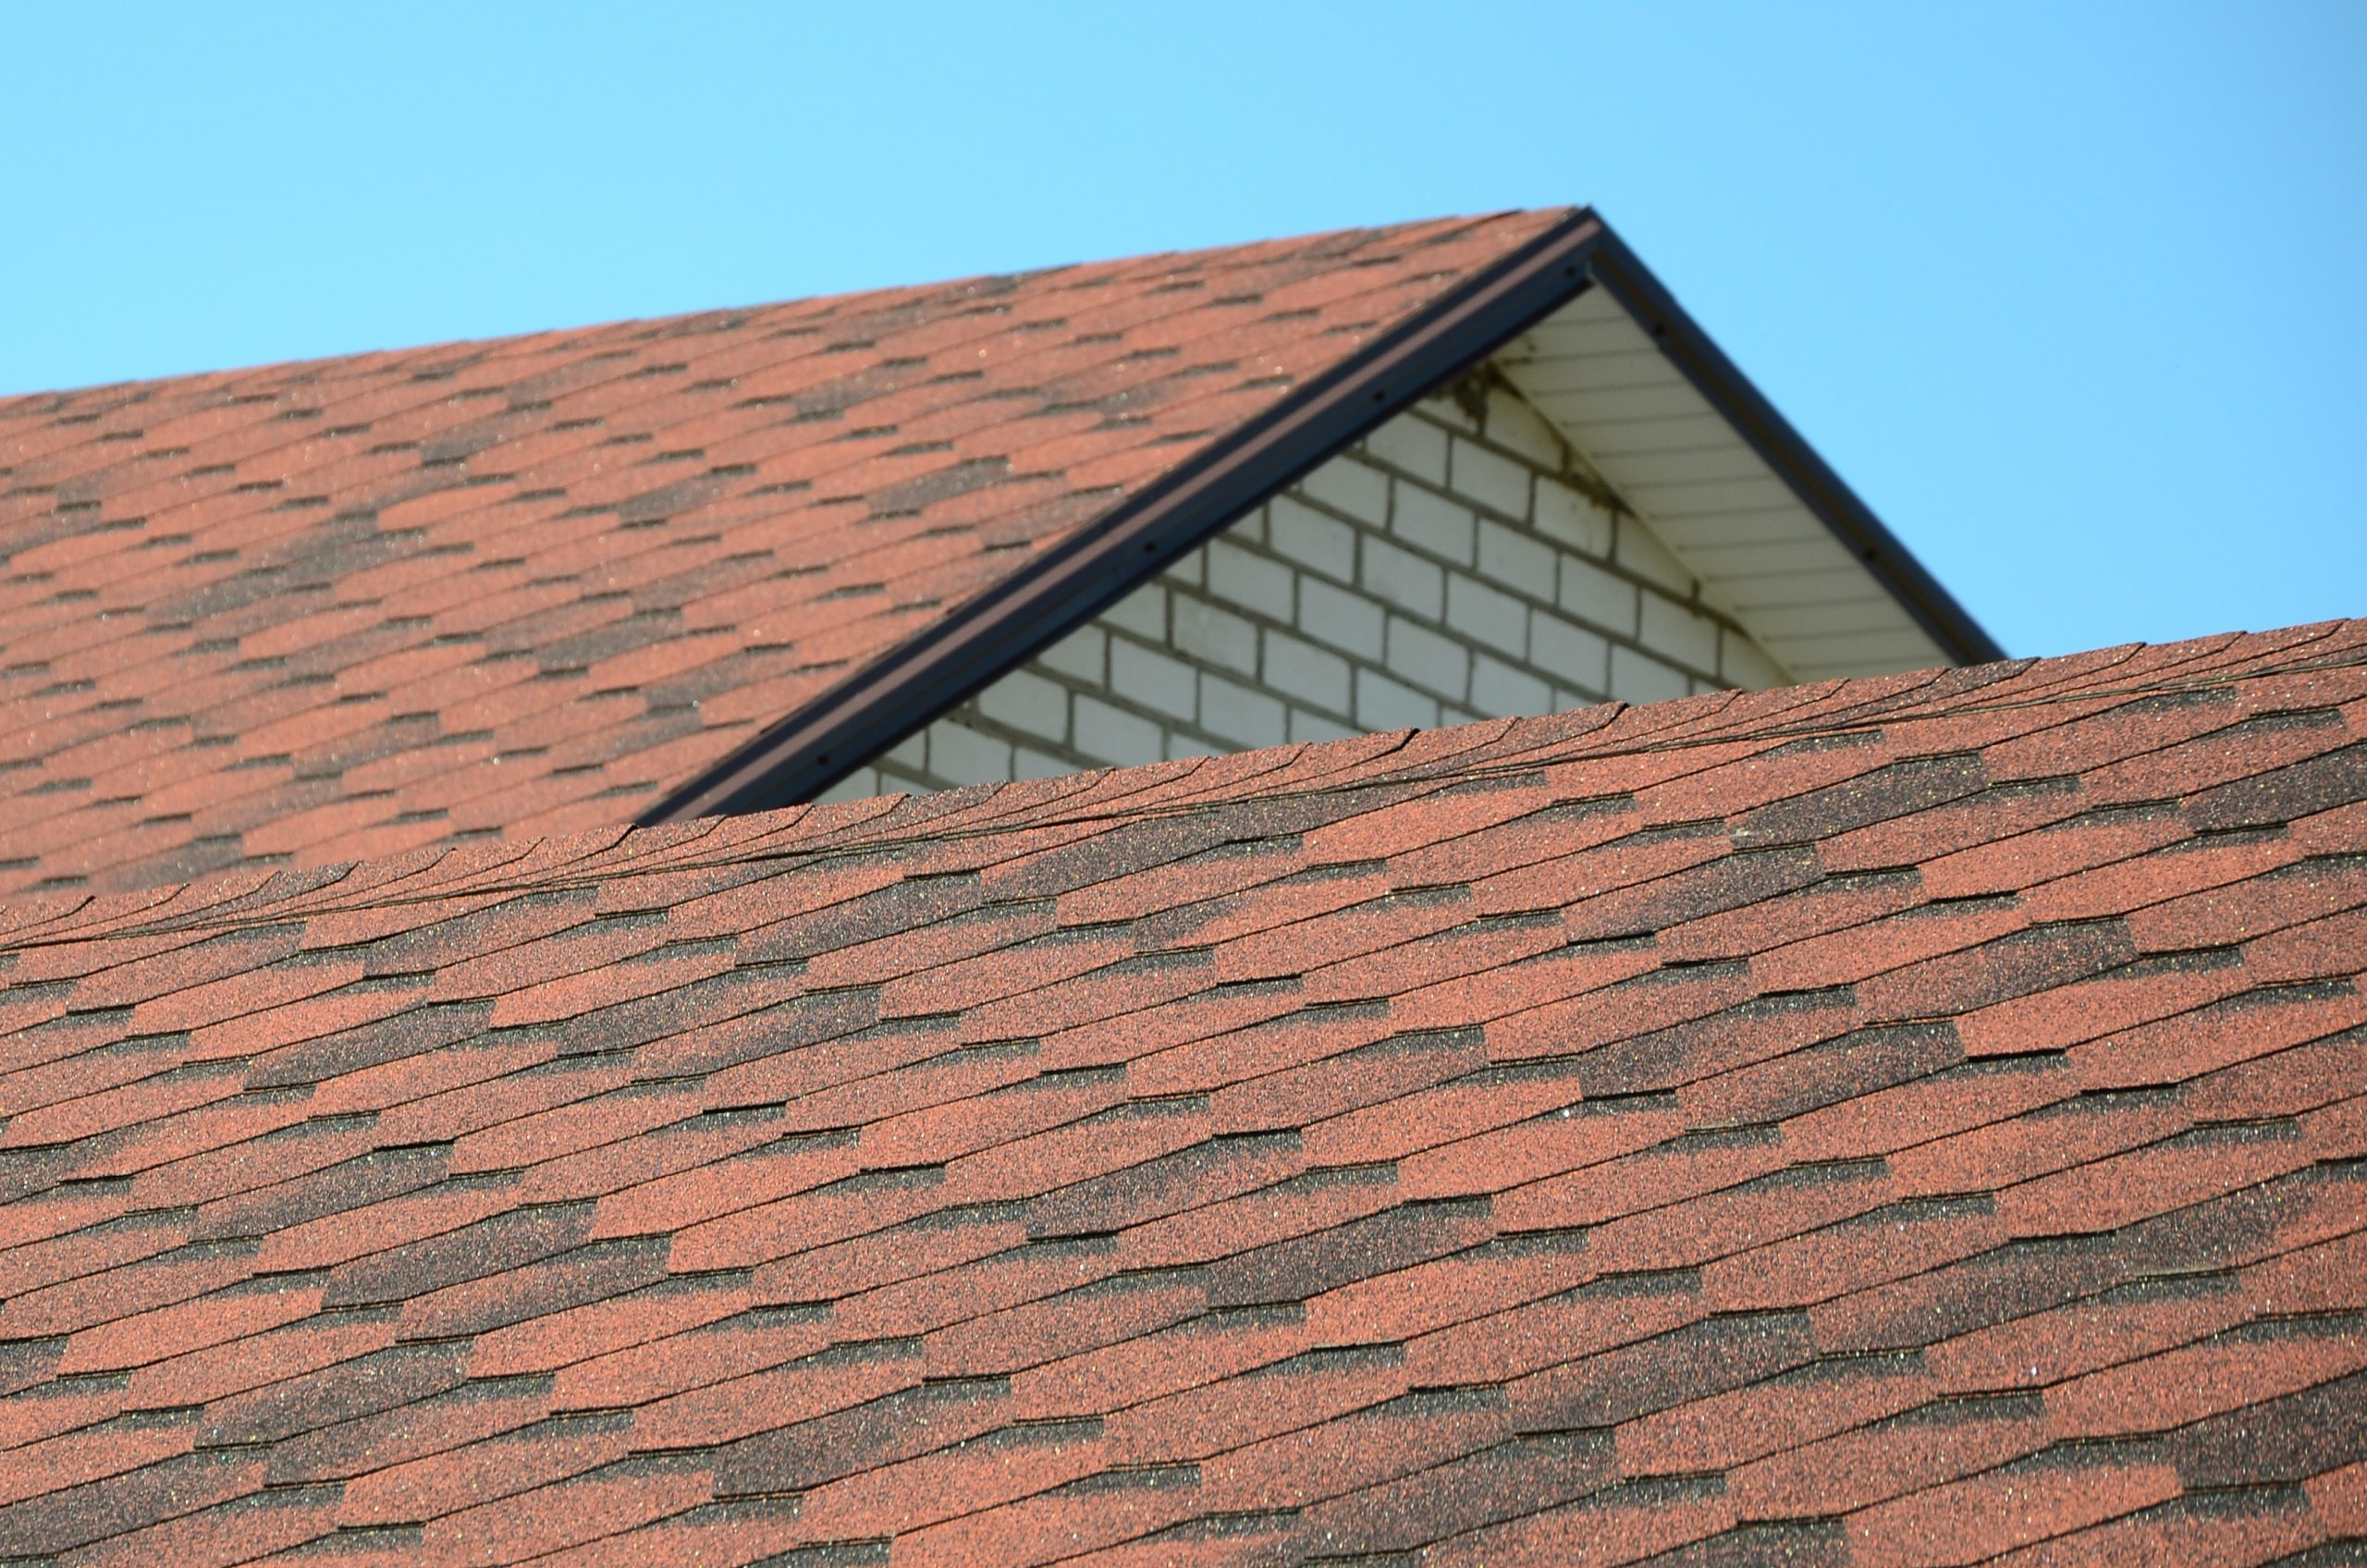 RainTech Roofing - The roof is covered with bituminous shingles of brown color. Qua